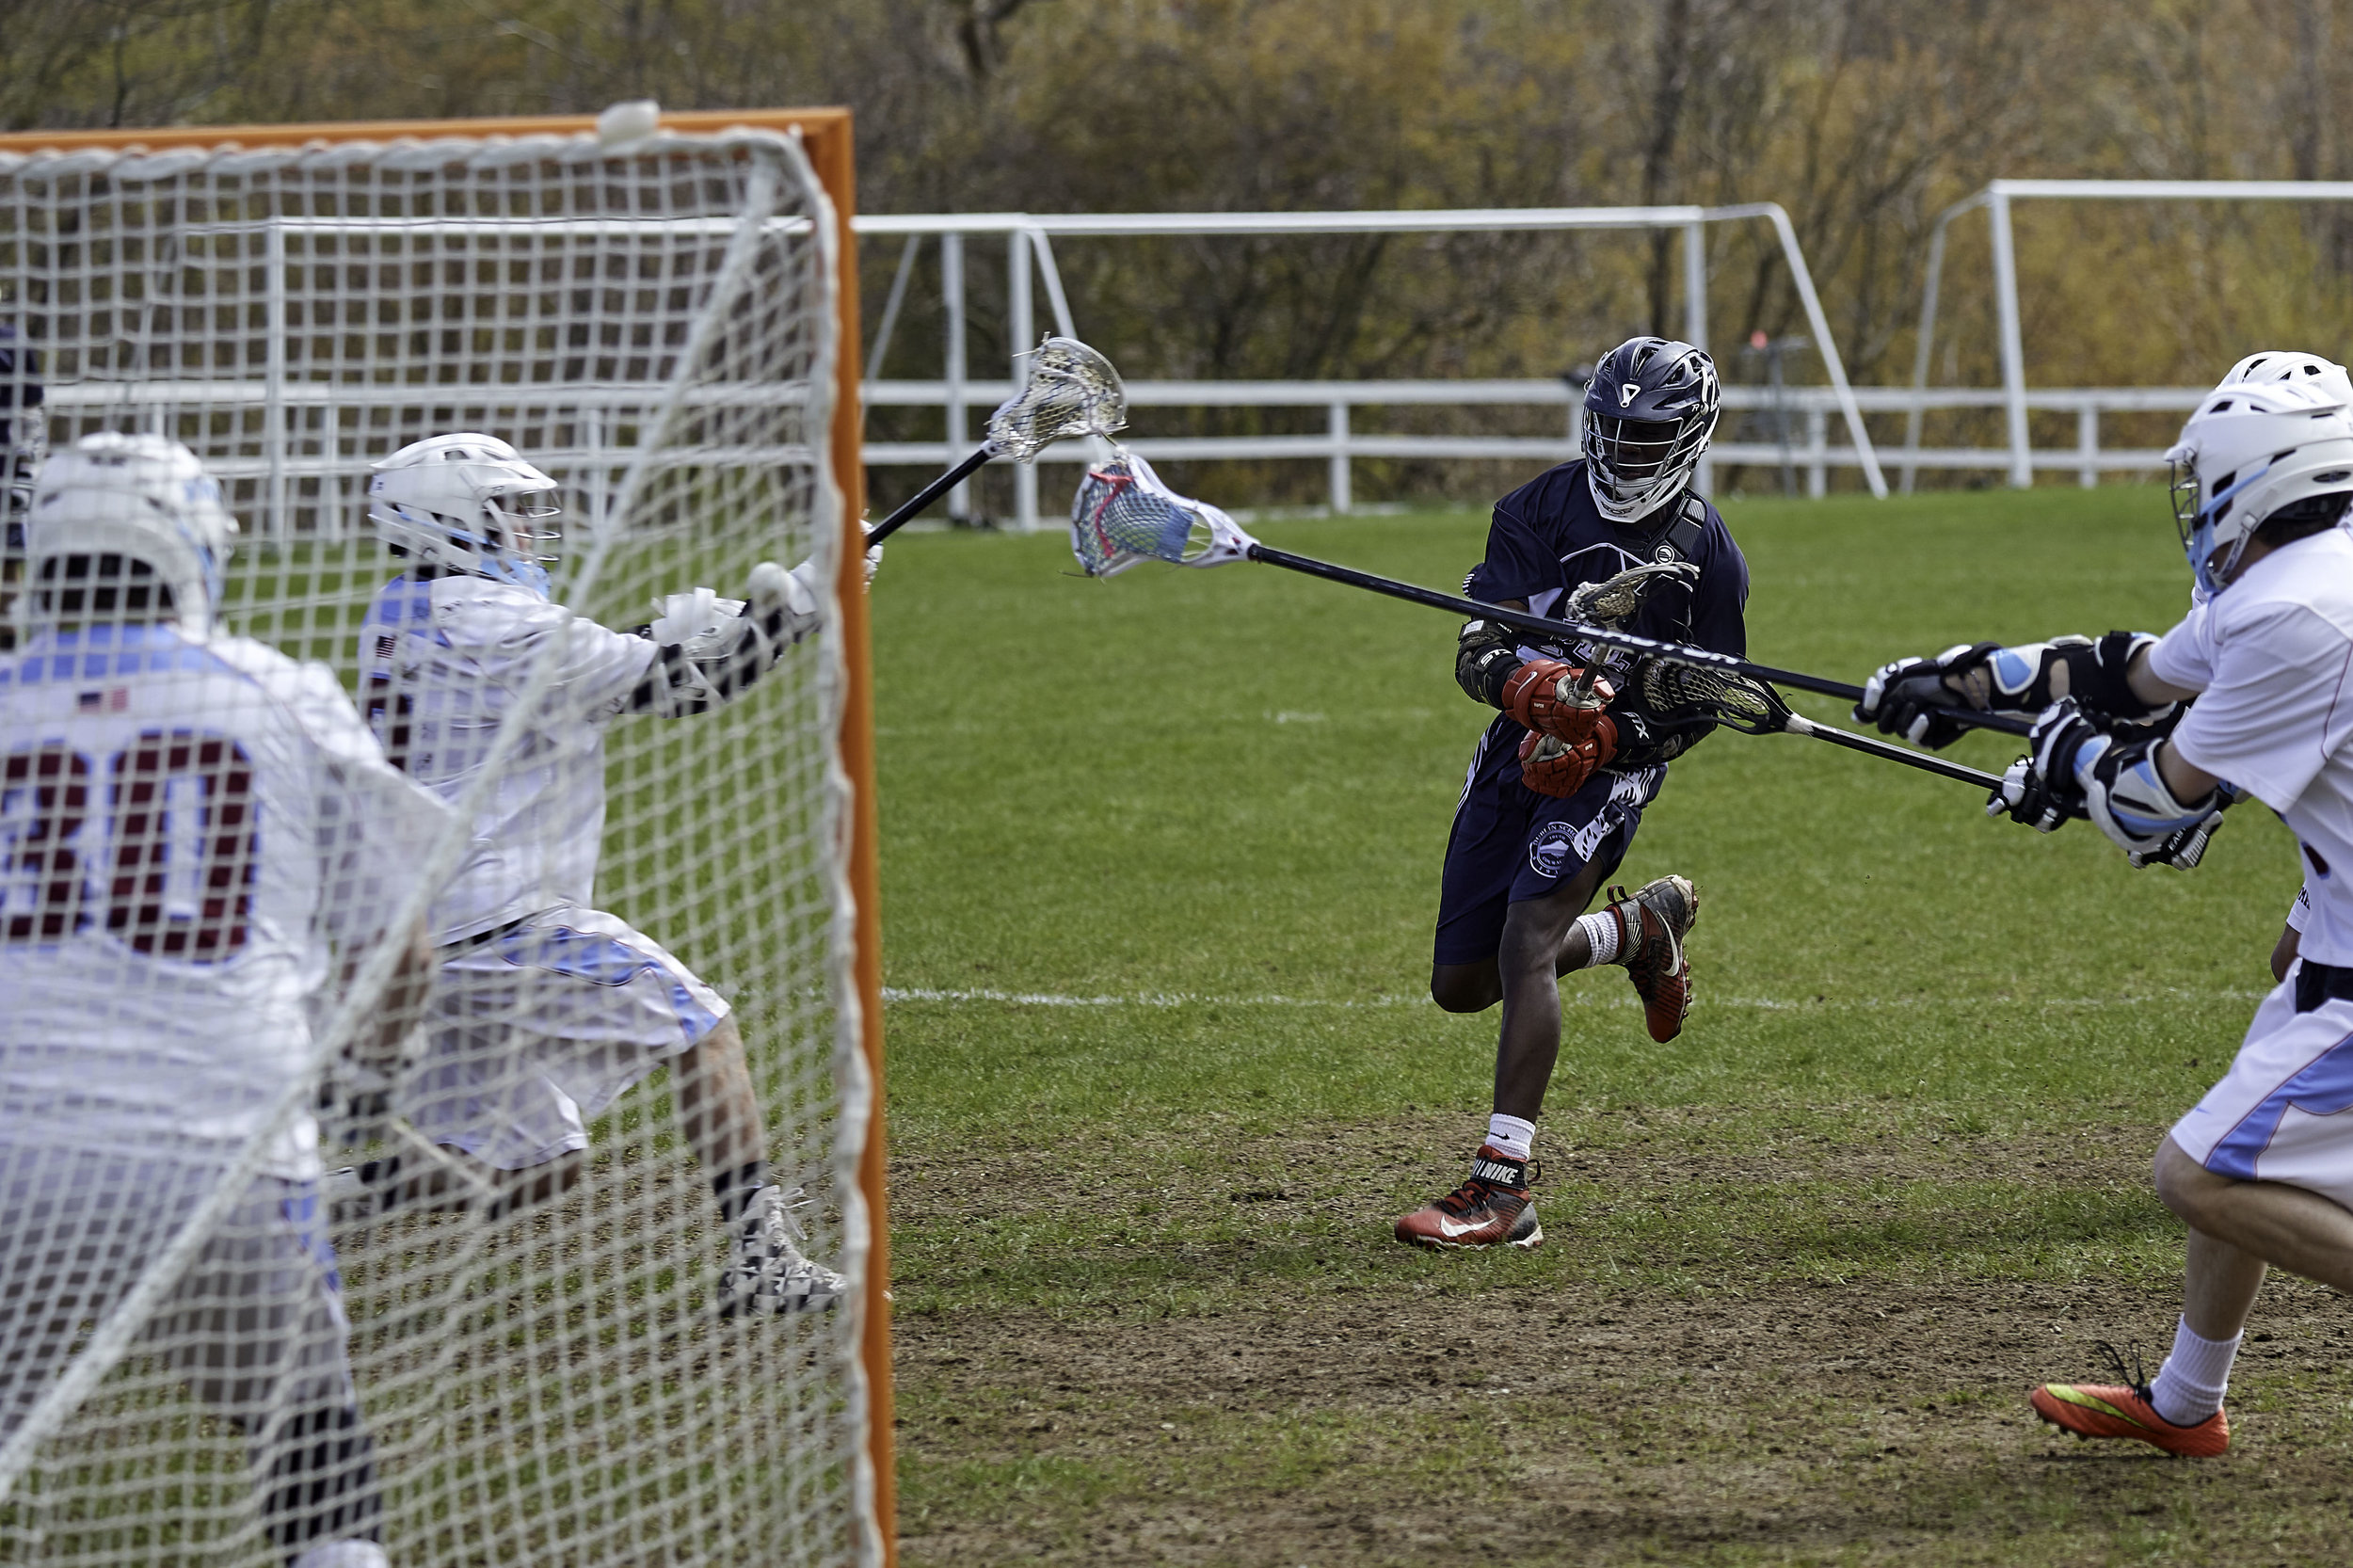 Boys Lax vs Northfield Mount Hermon JV - May 15 2019 - 0017.jpg